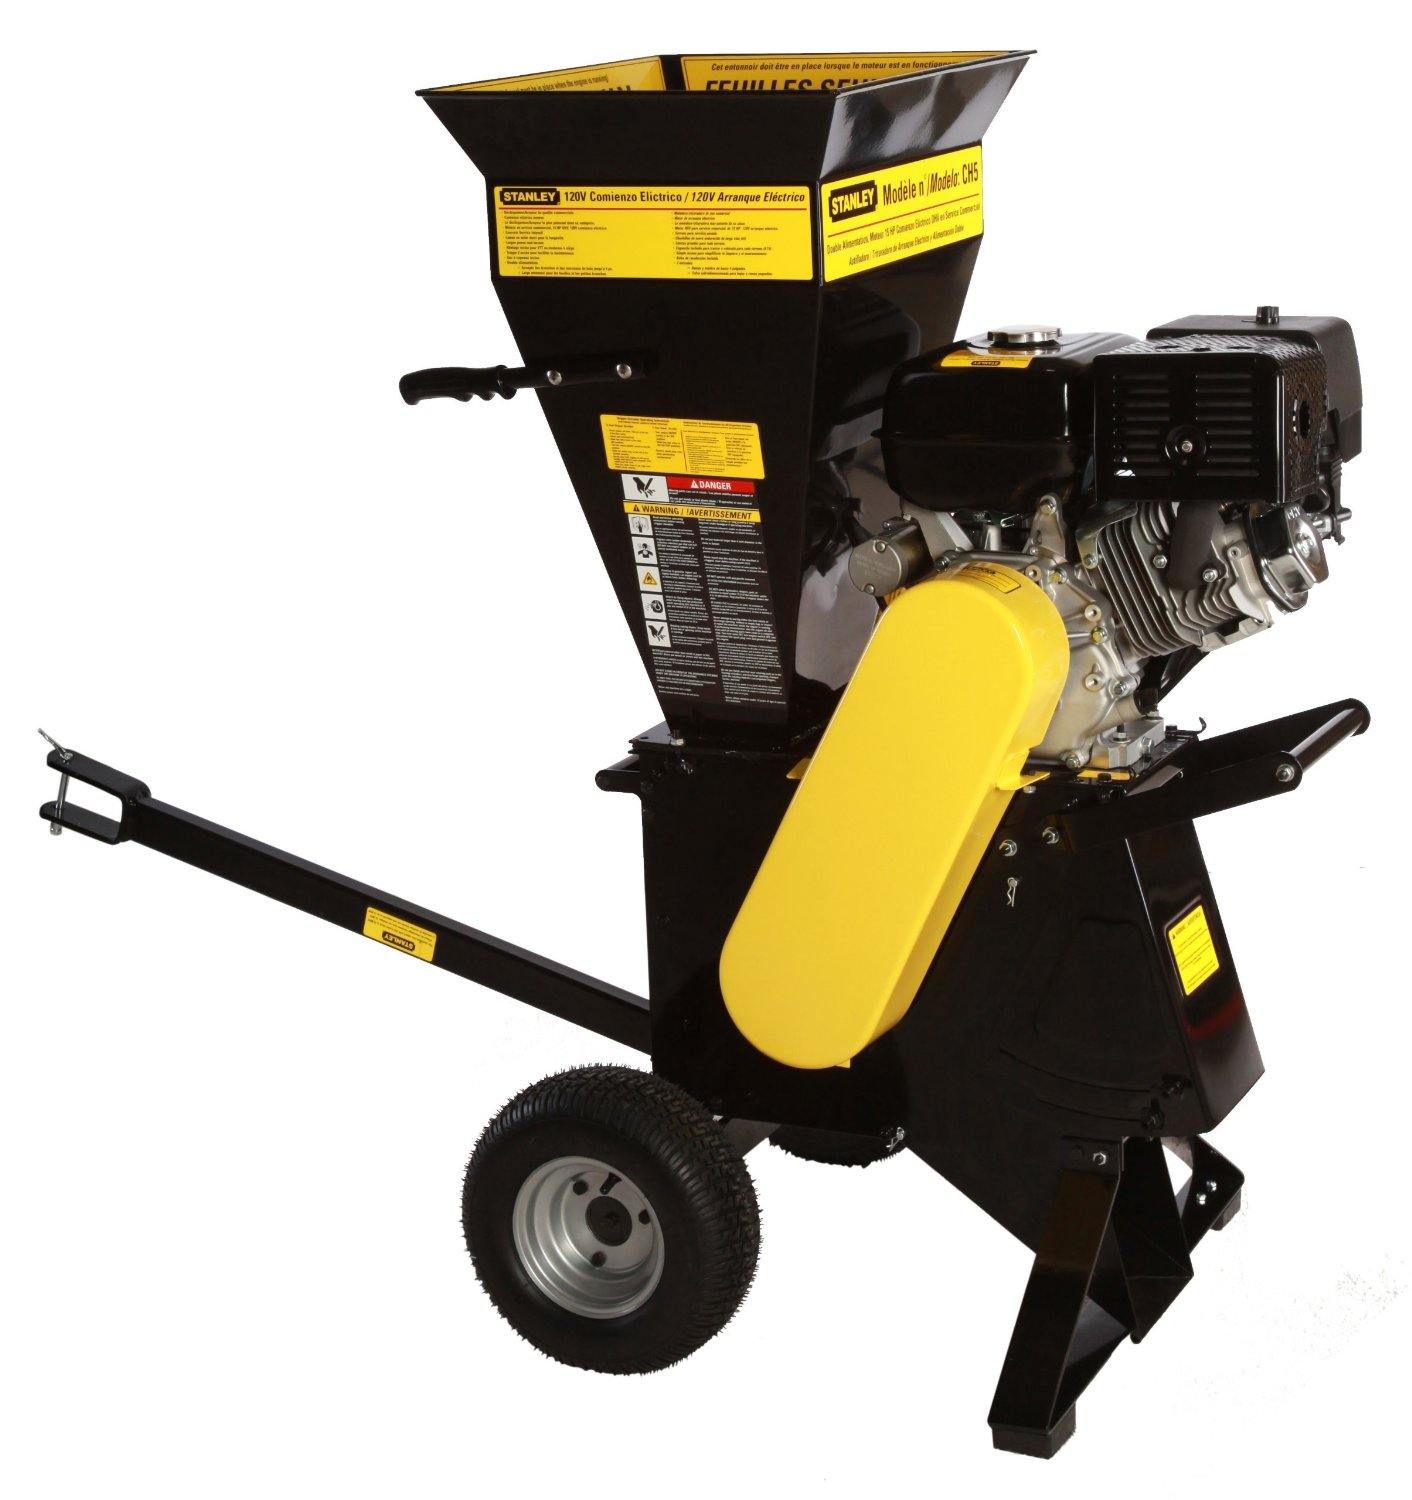 home depot mower with Yardchippershredder on Dr 48in Tow Behind Landscape Rake in addition Dual Action 3 Point Hitch Log Splitter New furthermore Lifestyle Mini Heater 214 P further Rain Mate Channel With Black Heelguard Grate 3 Pack g2196717 further Keter Store It Out Xl.